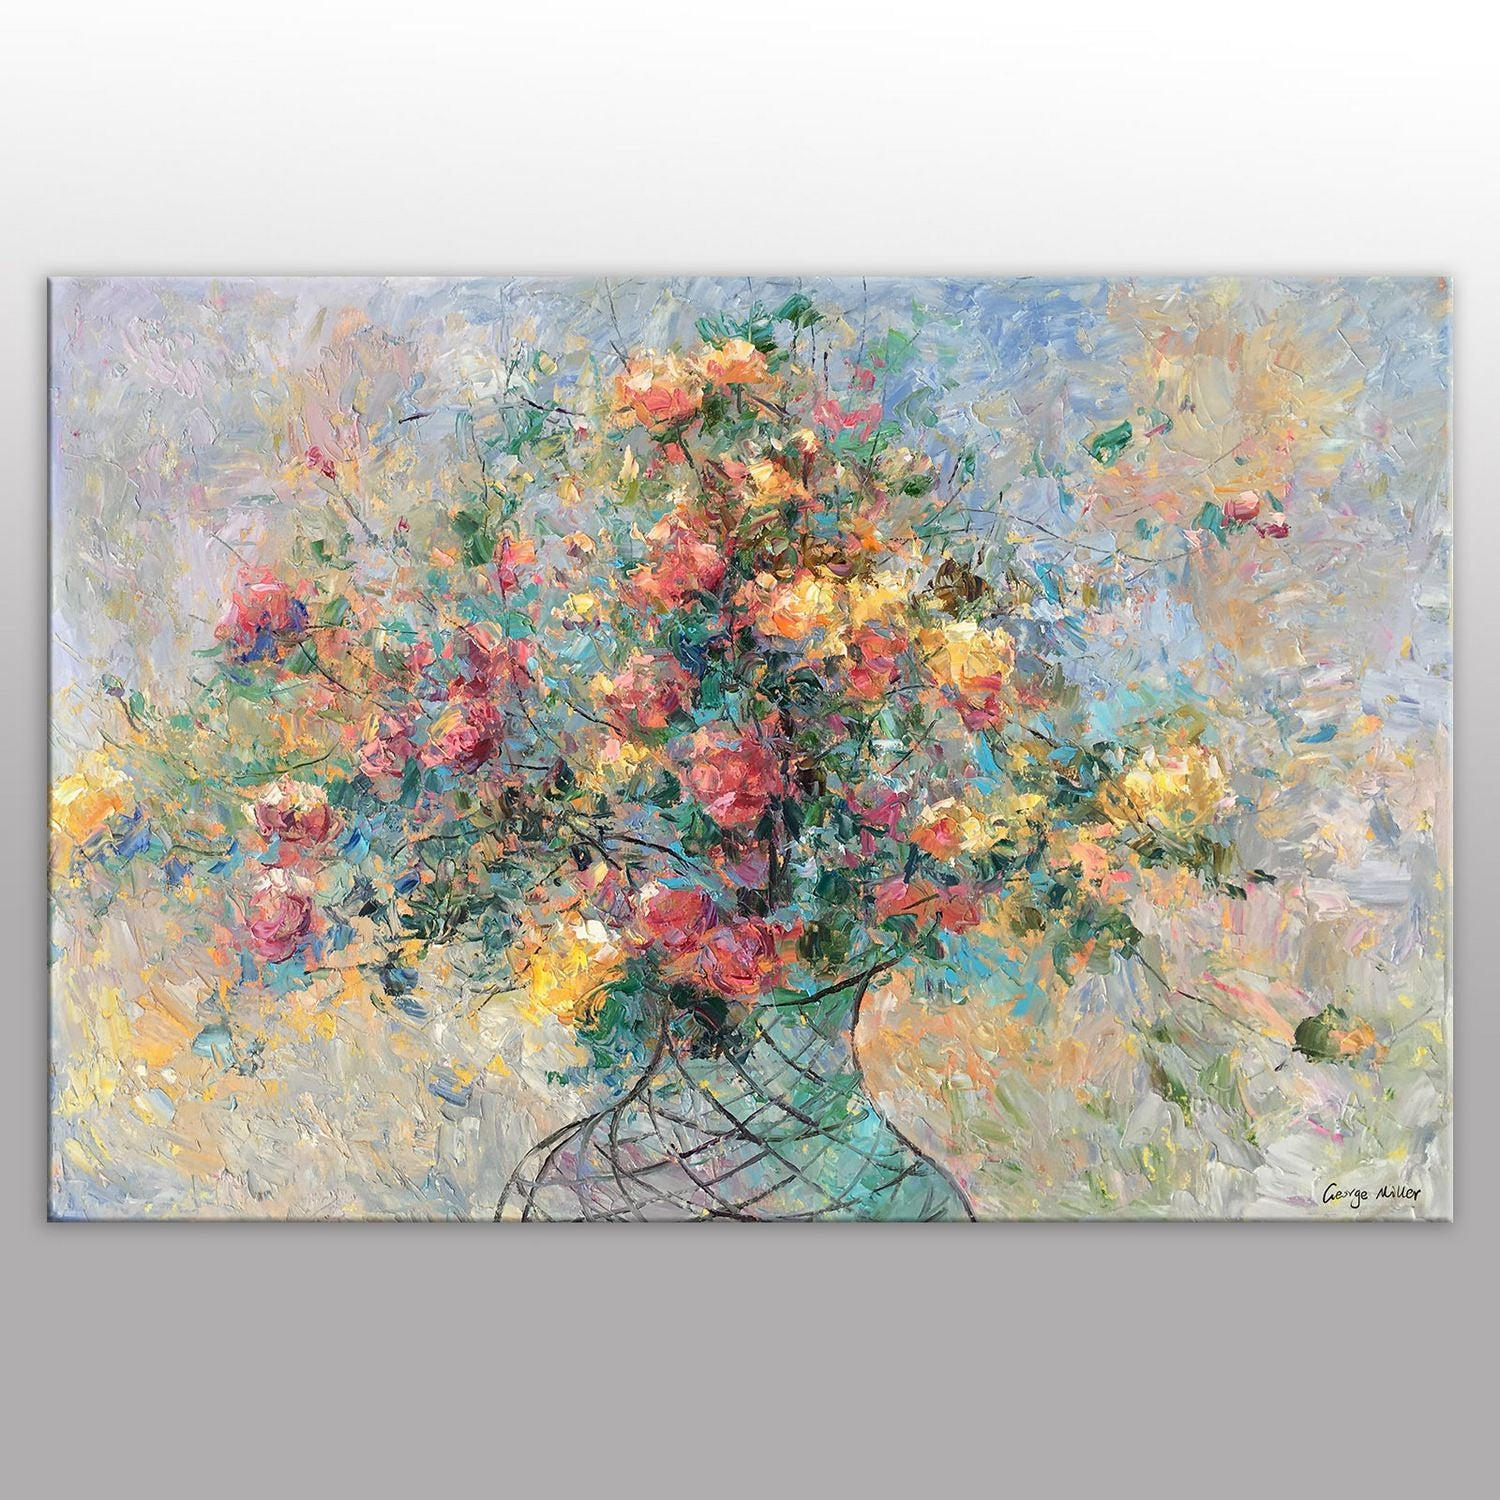 Flower Painting, Floral Art, Original Painting, Bedroom Wall Decor, Abstract Wall Art, Large Oil Painting, Canvas Painting, Modern Art